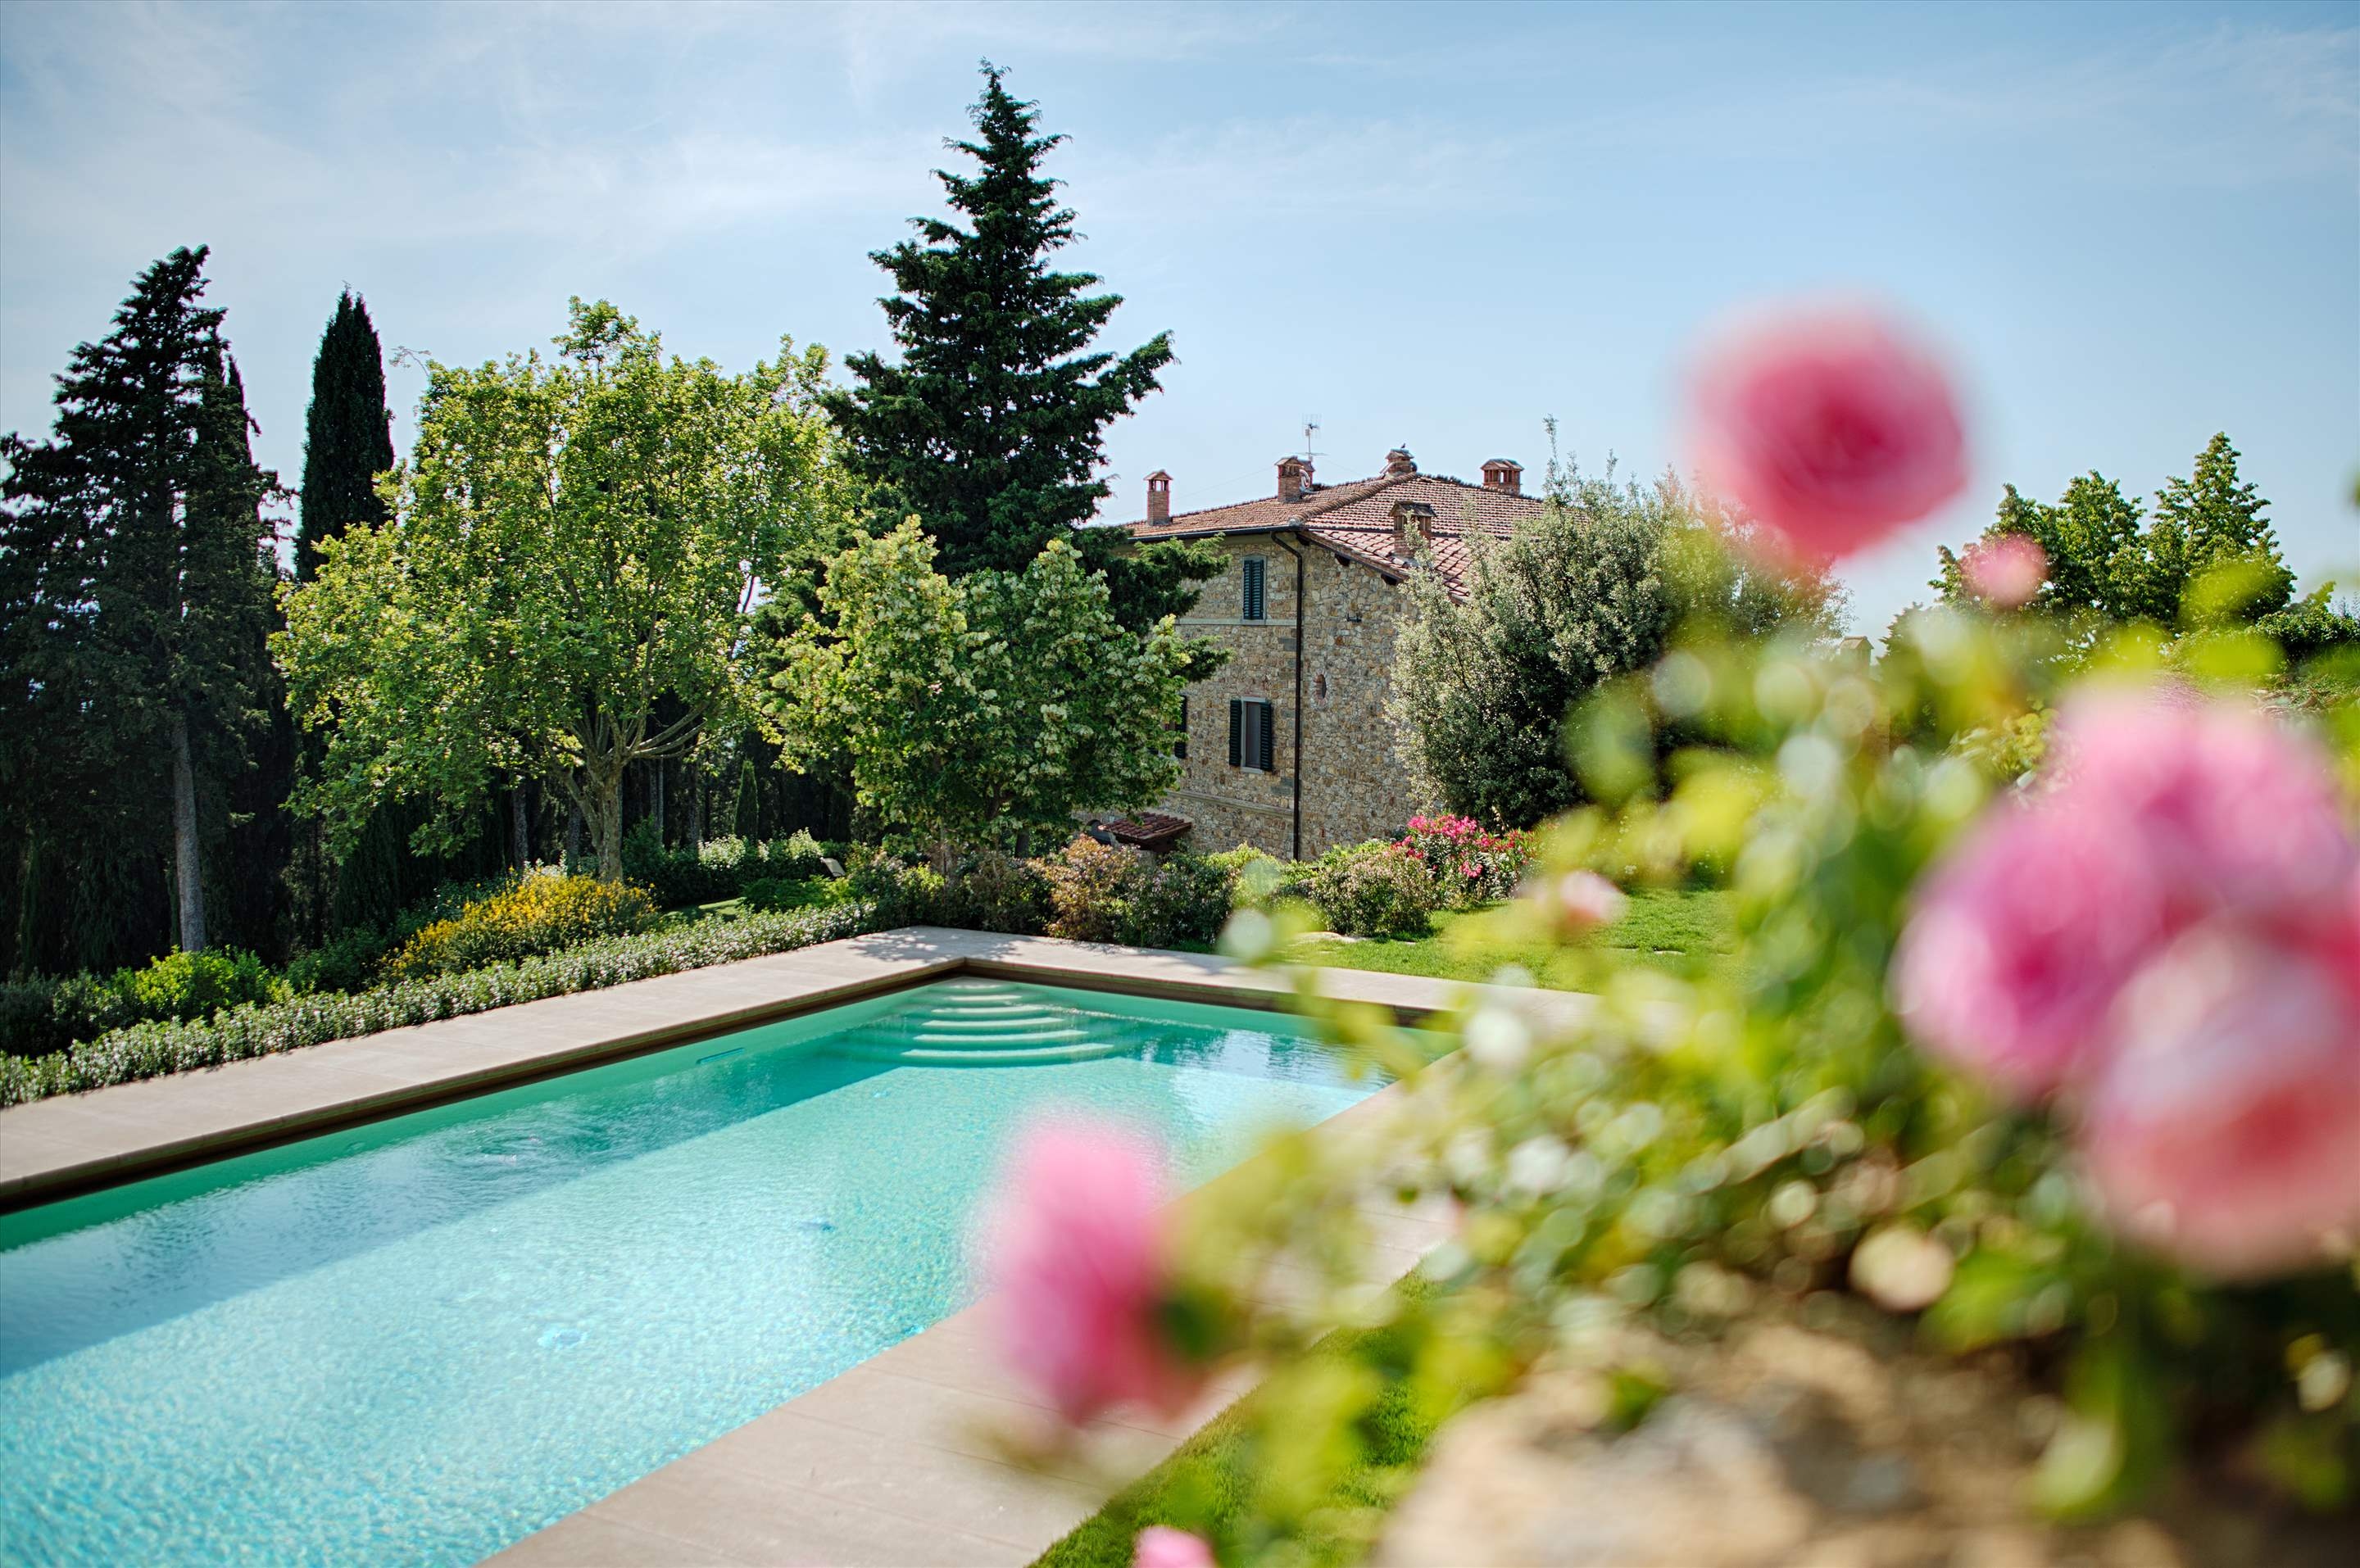 Villa La Valetta, 1 Bed Apt Uva, 1 bedroom villa in Chianti & Countryside, Tuscany Photo #7